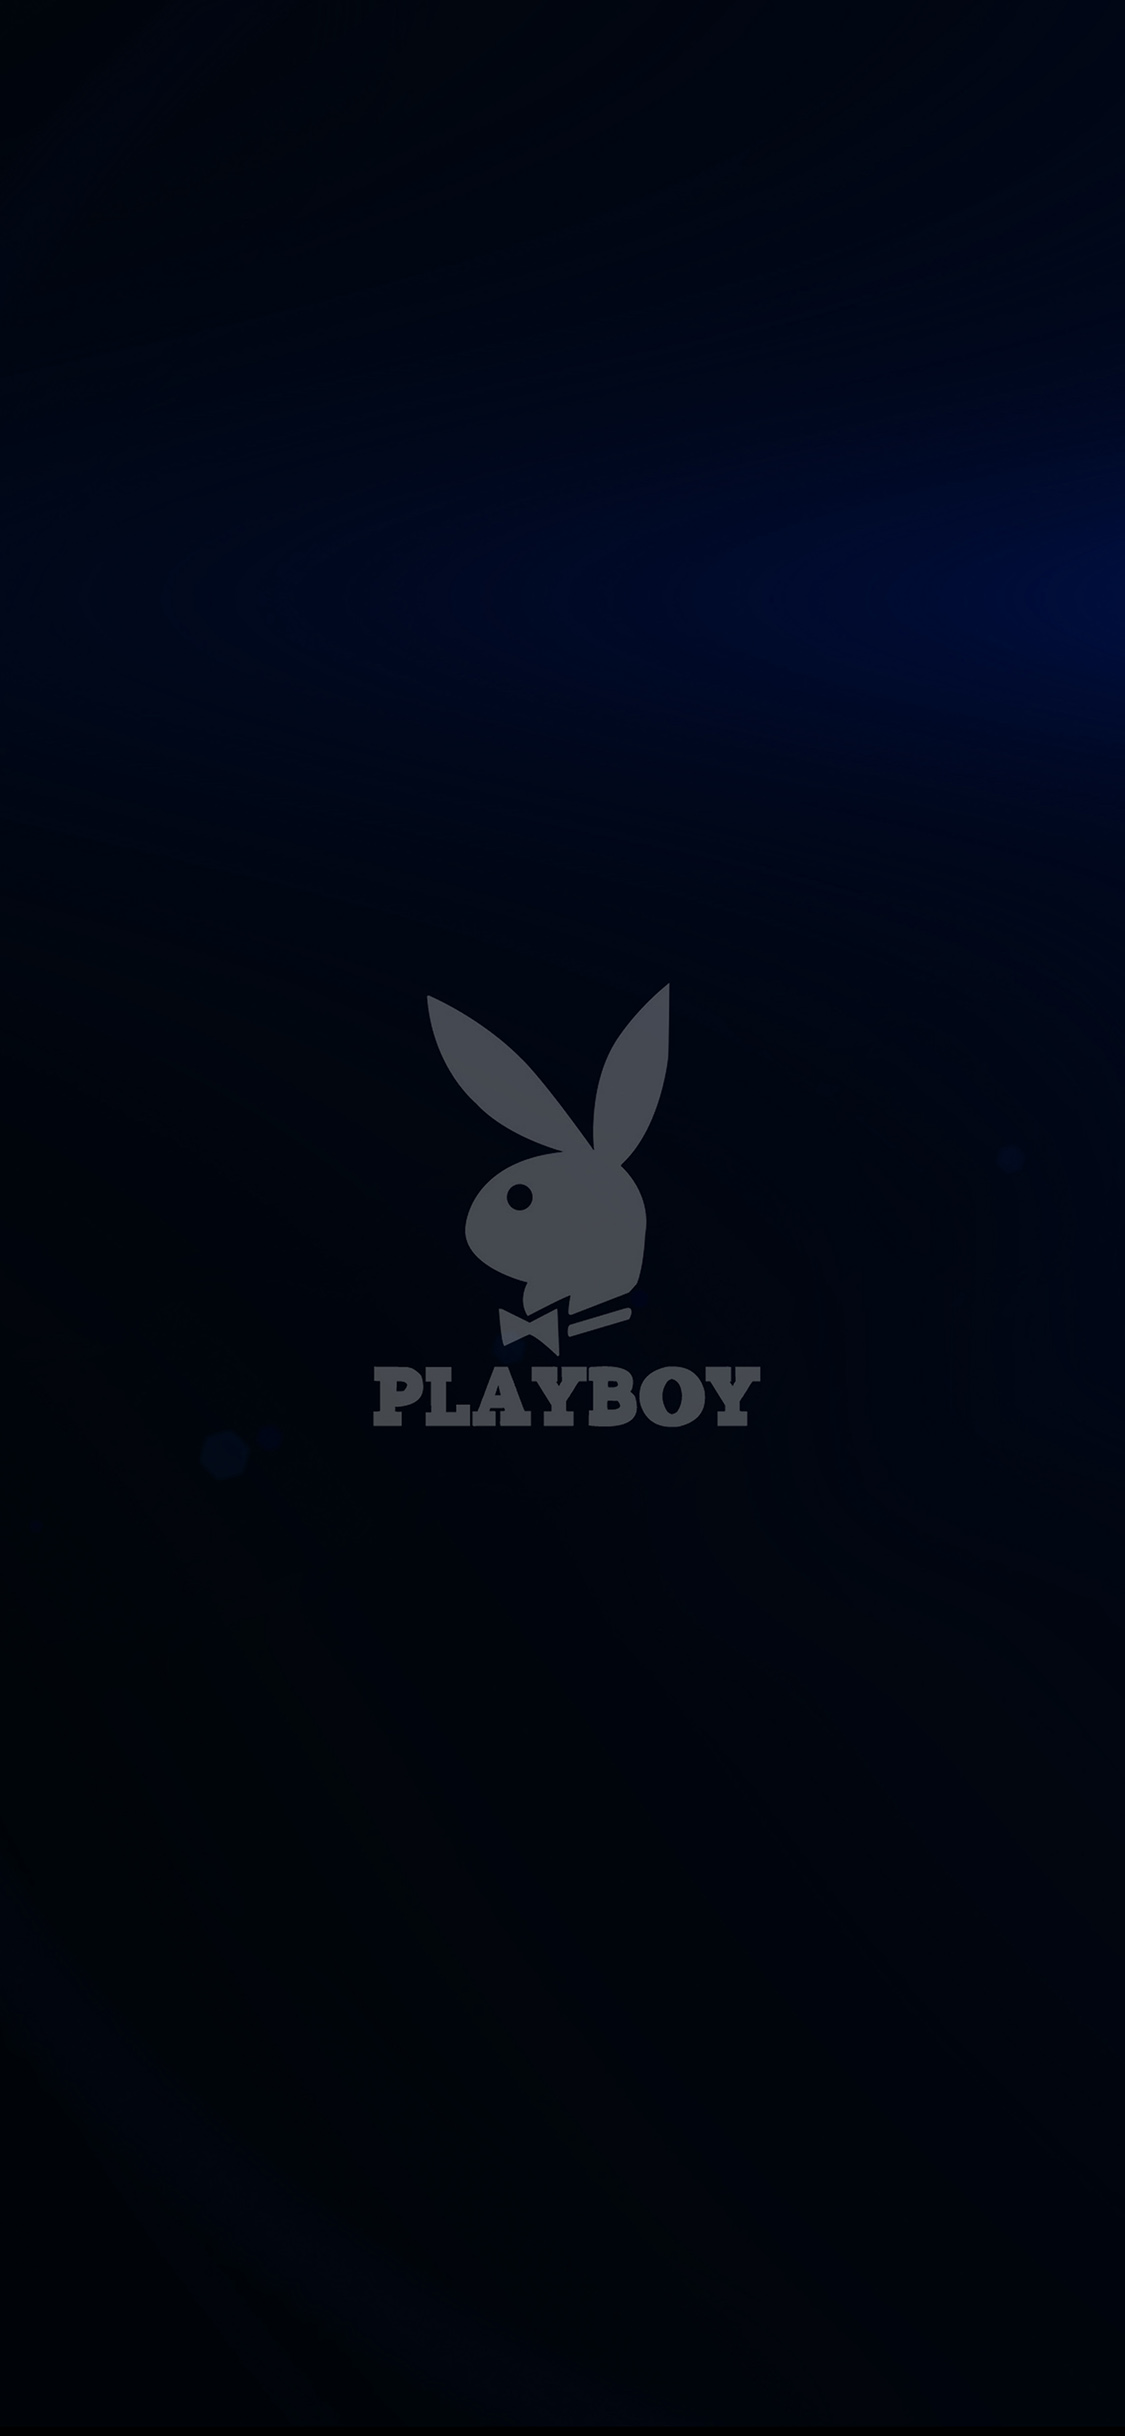 iPhoneXpapers.com-Apple-iPhone-wallpaper-ak53-playboy-logo-dark-logo